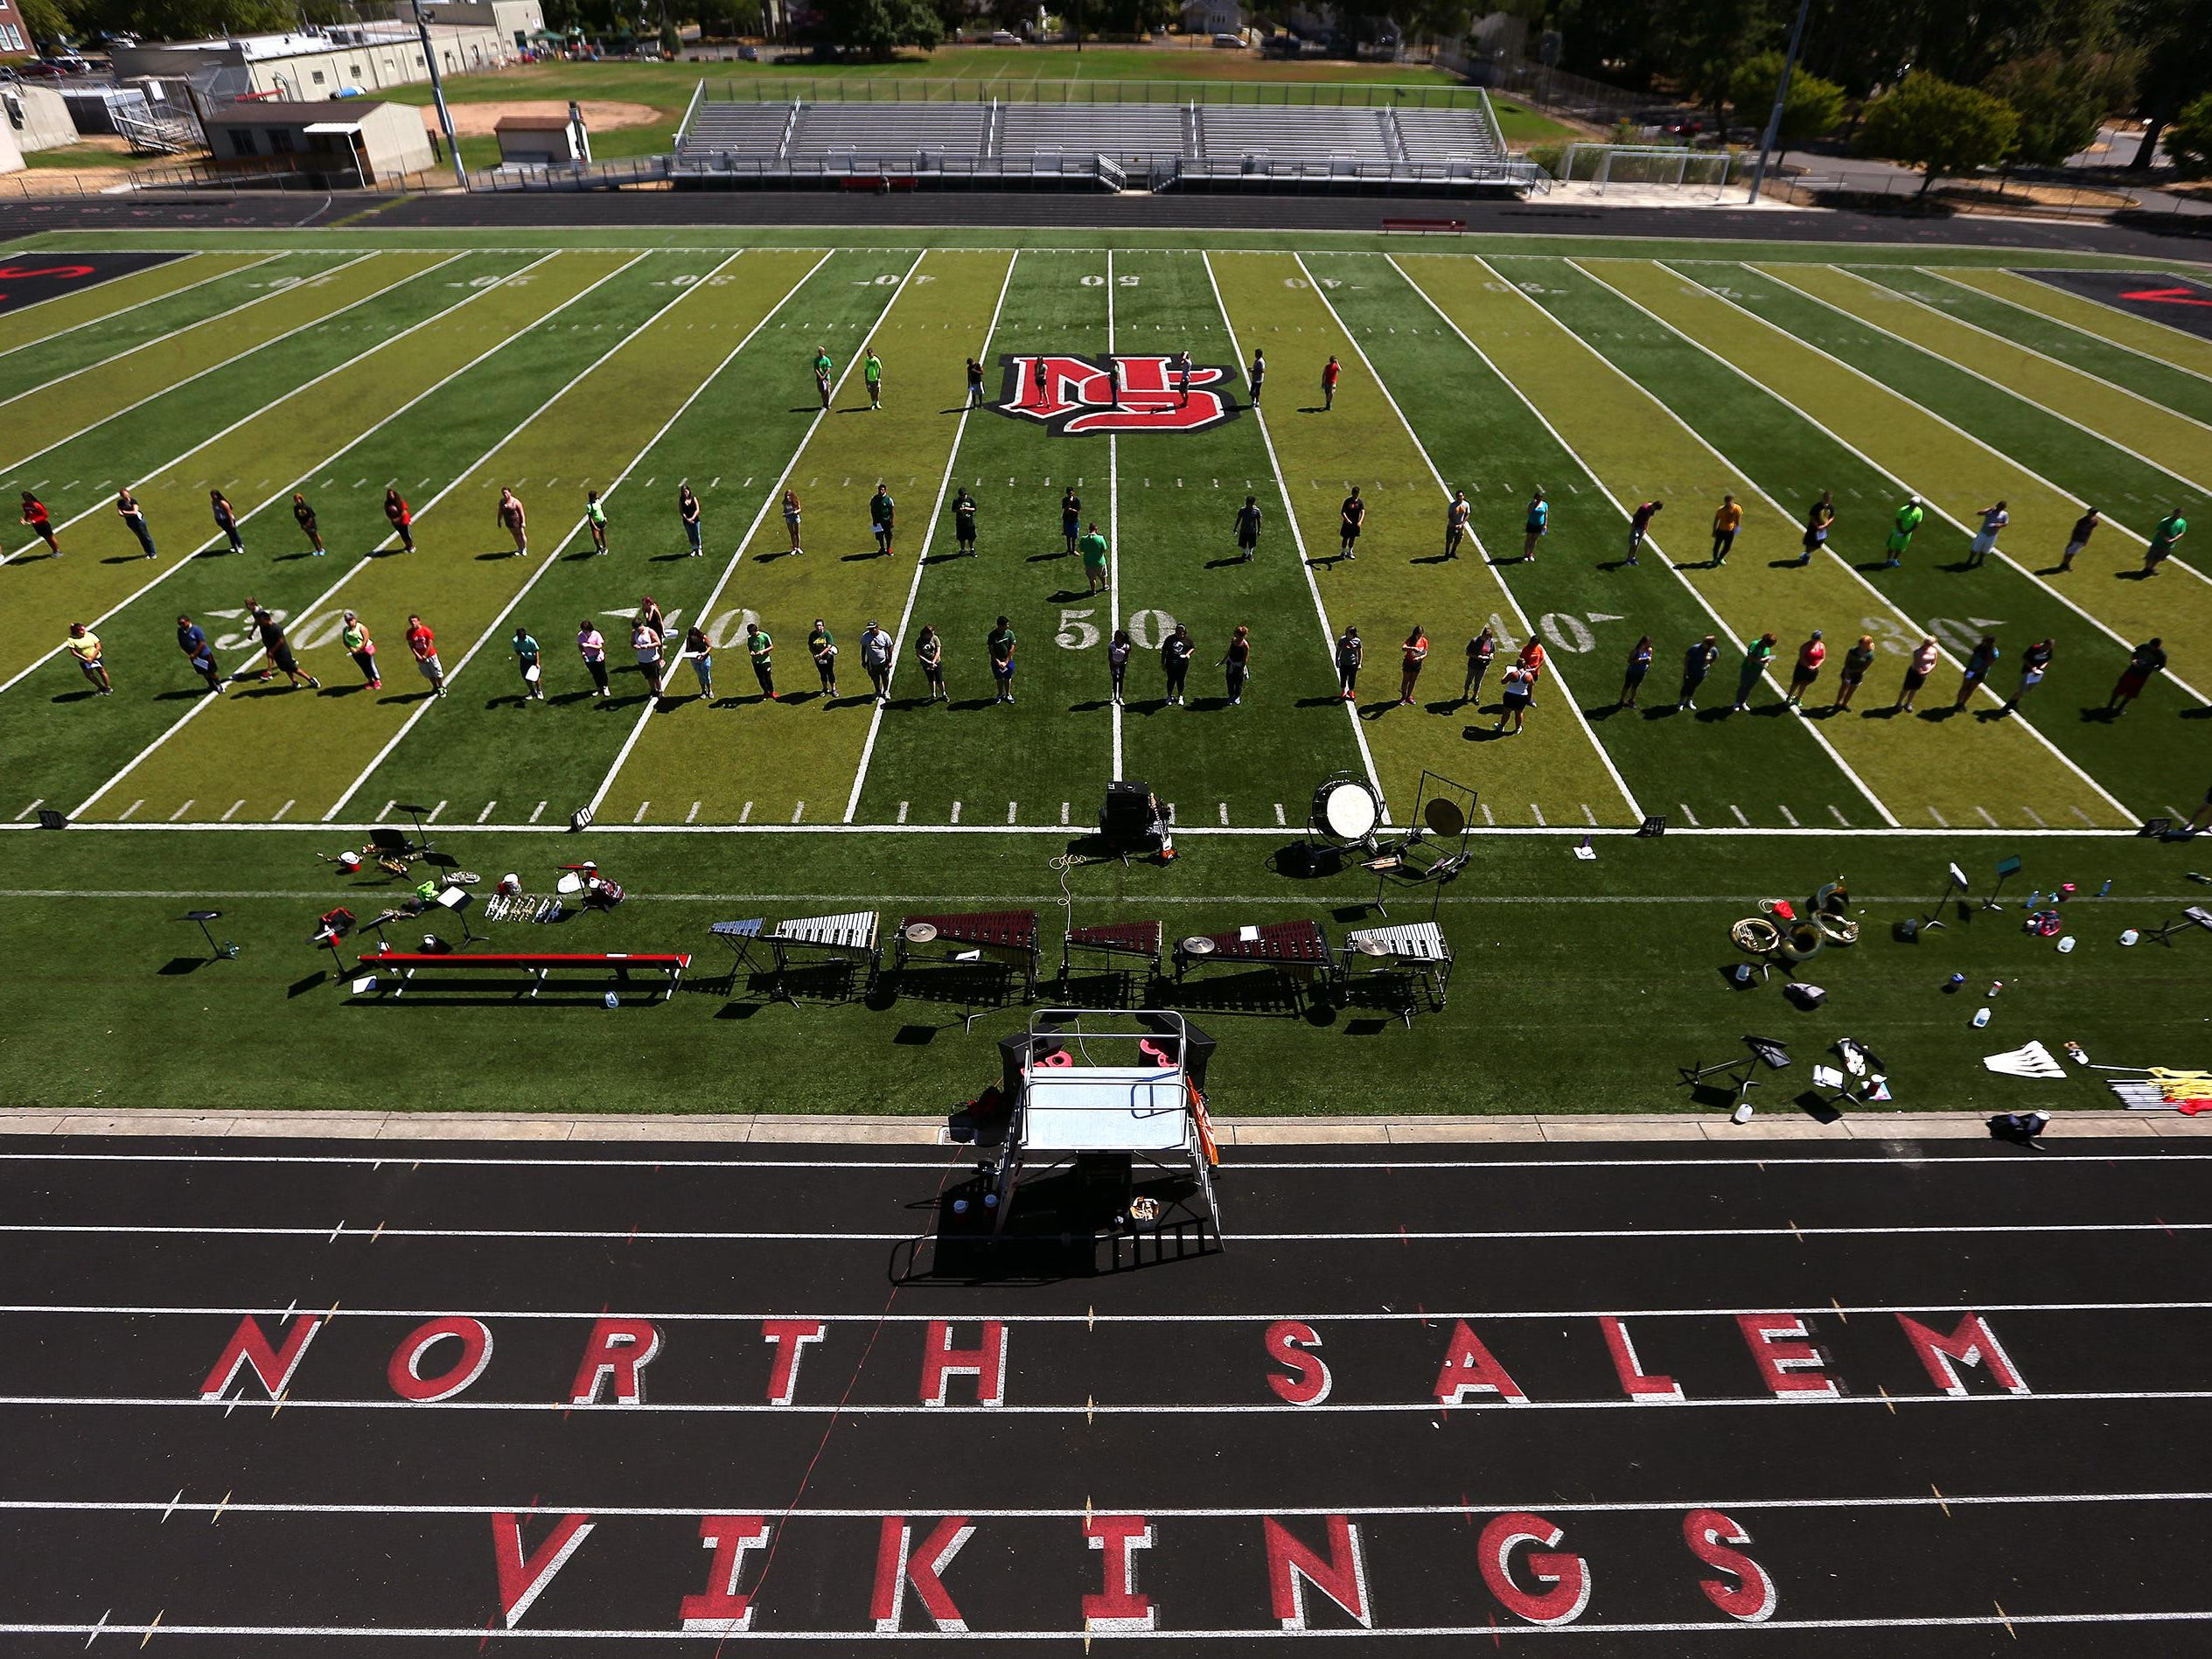 The marching band learns their steps during band camp at North Salem High School, Thursday, August 20, 2015, in Salem, Ore.